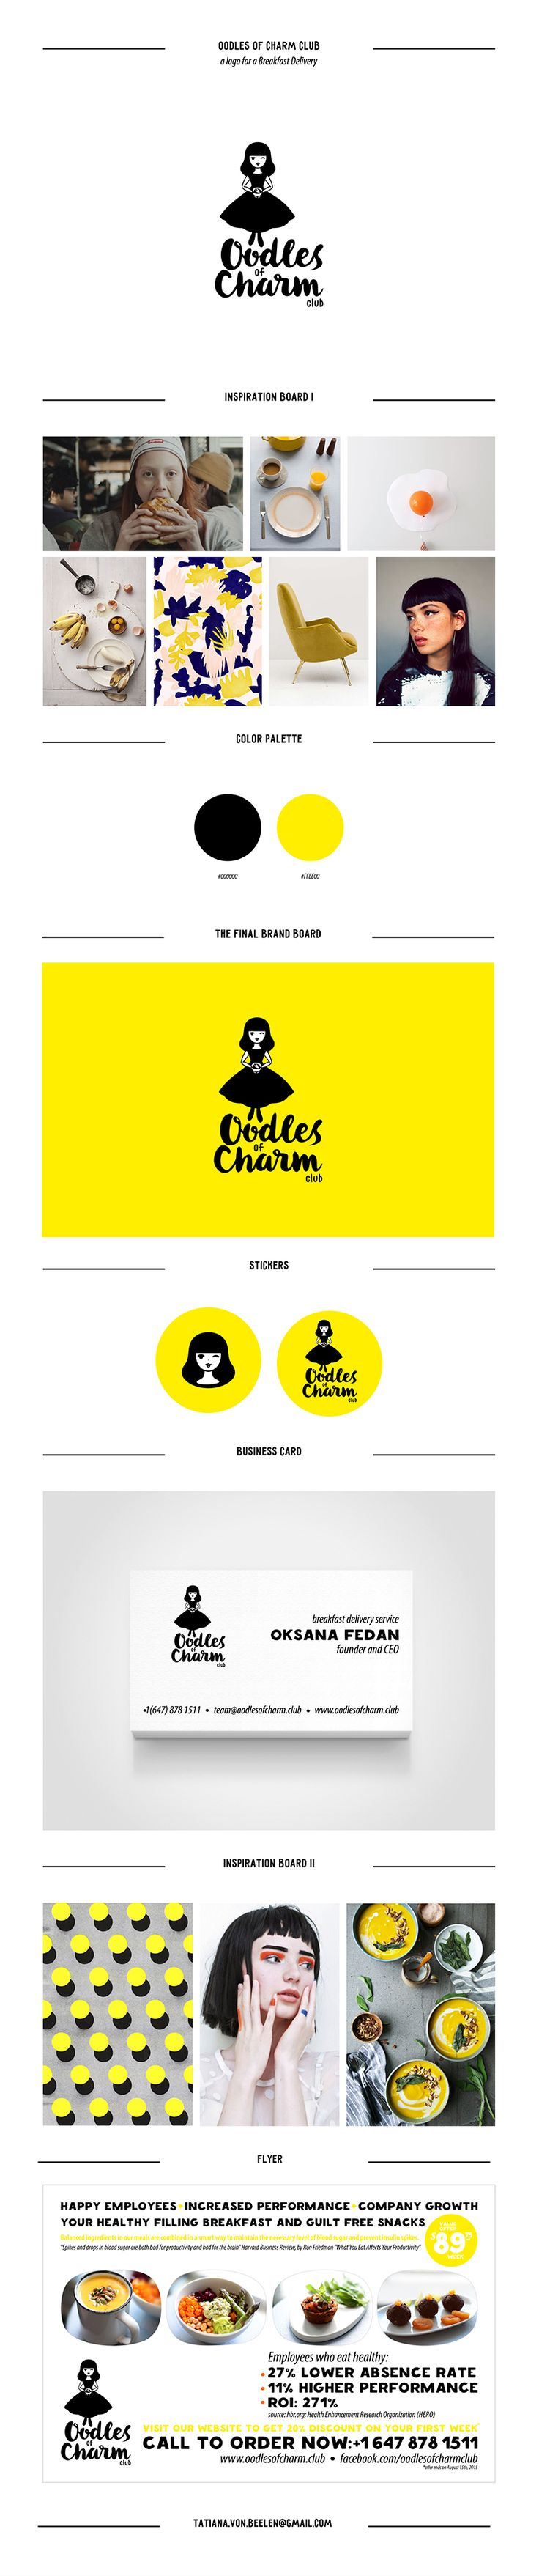 Oodles of Charm Club logo on Behance